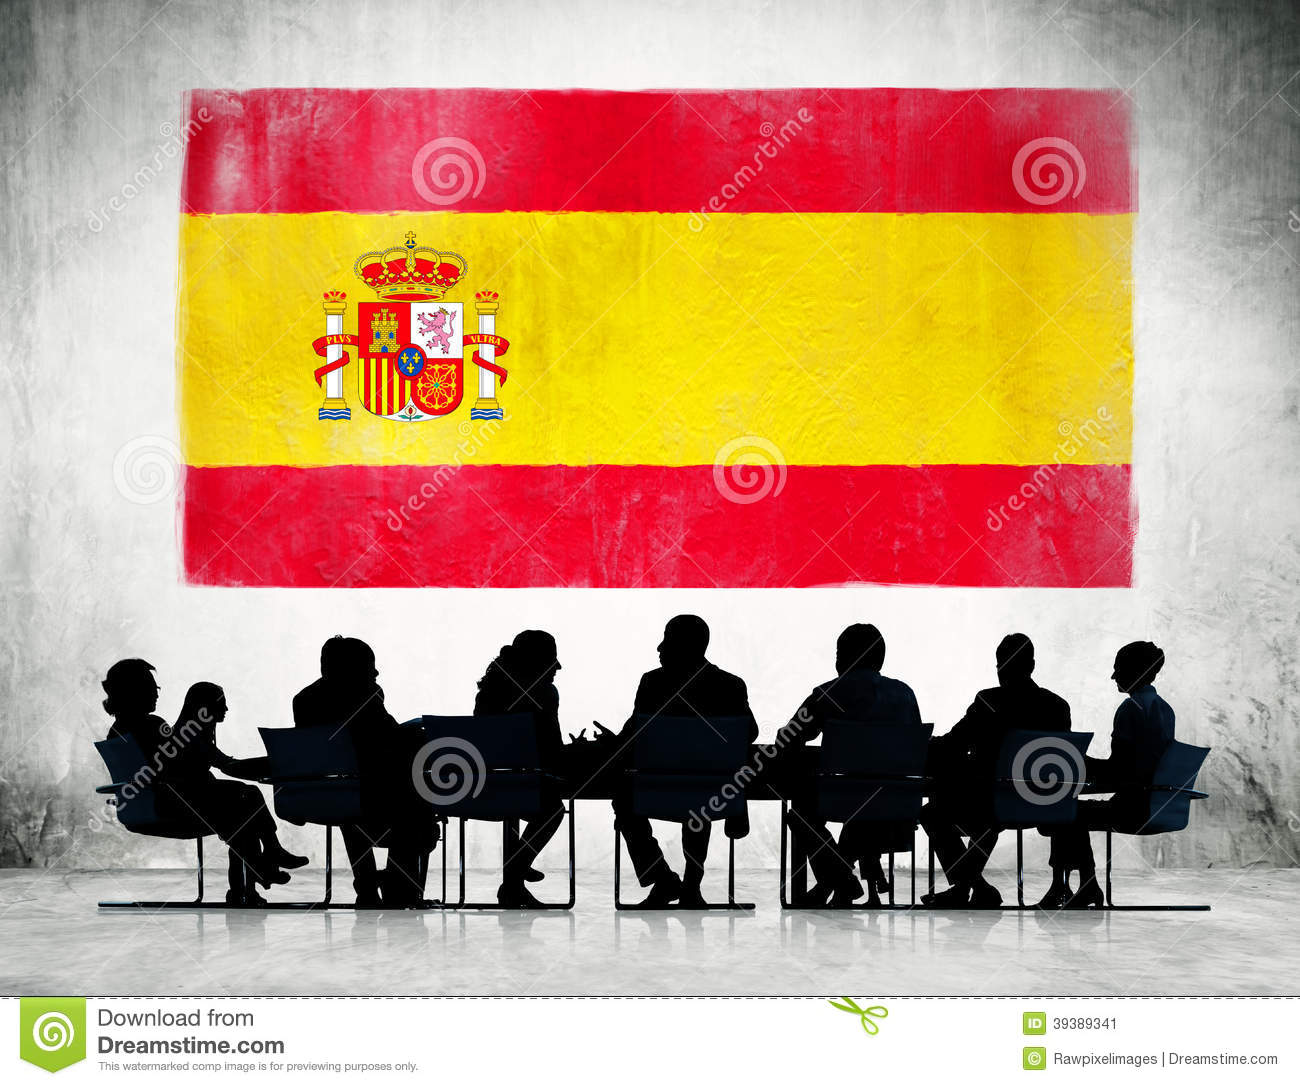 business communication in spain Silence is a communication skill that is overlooked, especially in the workplace managers, develop your employees' communication skills to see its benefits.